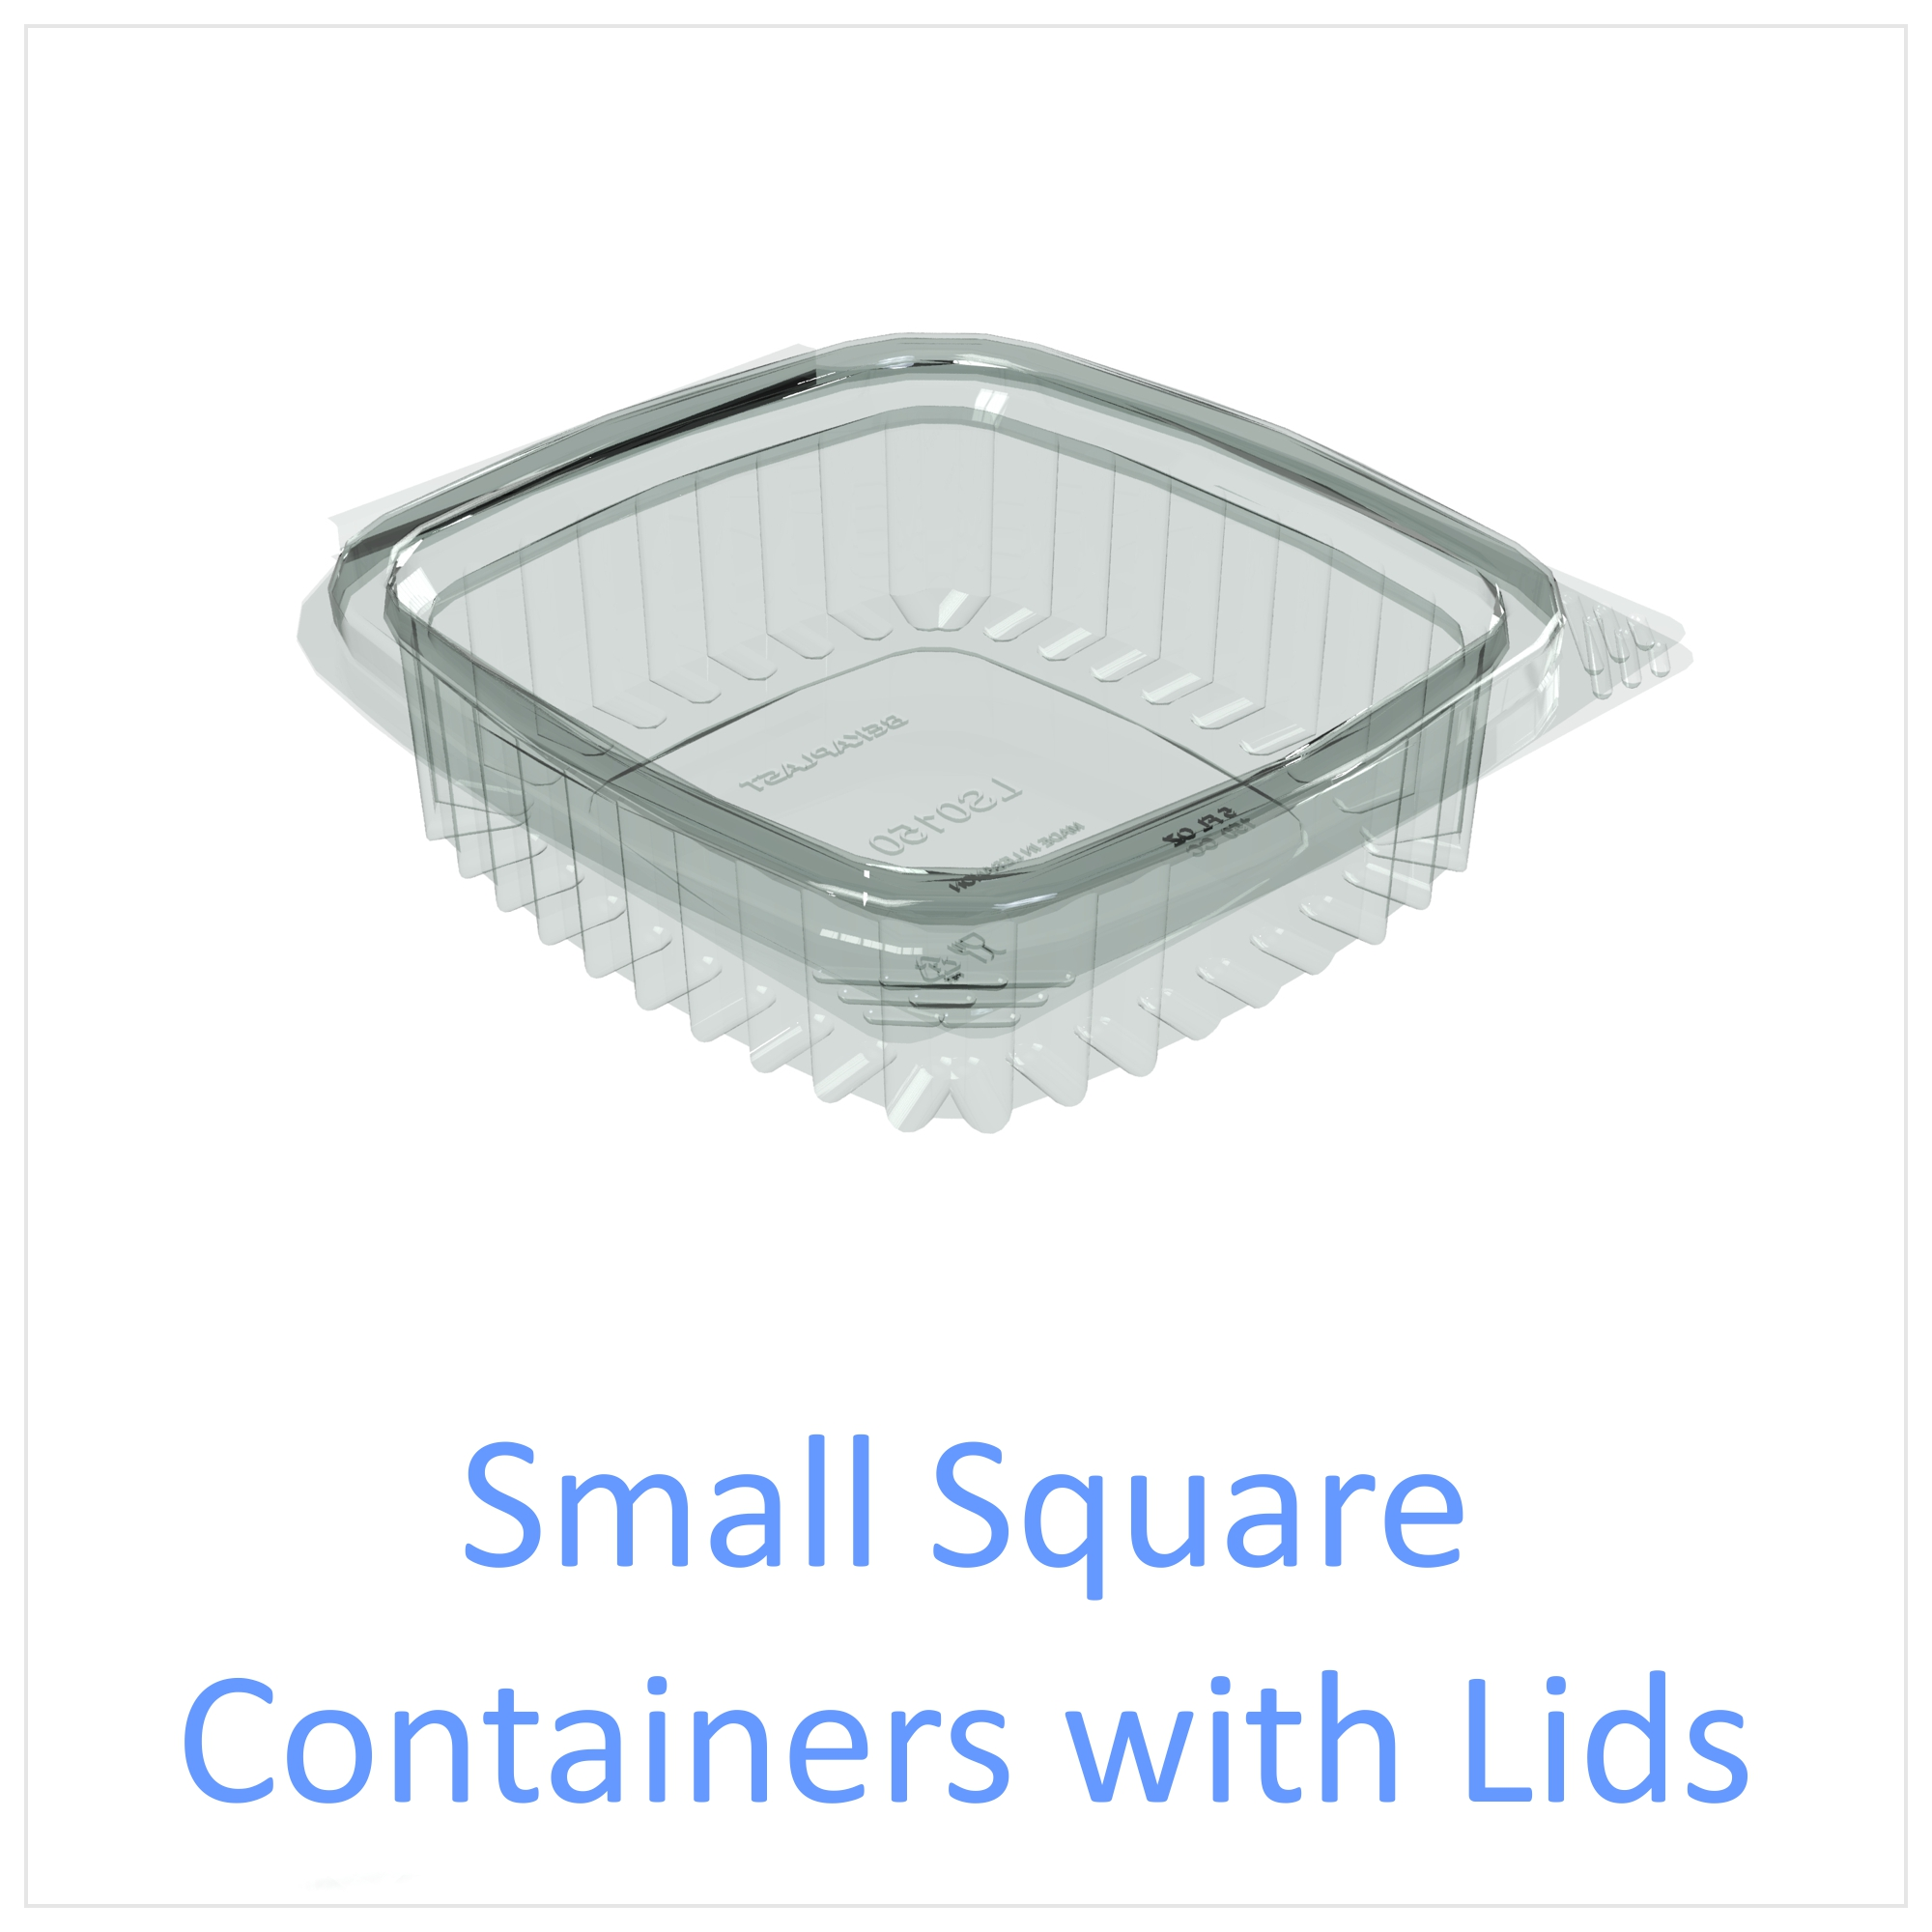 Small Square Containers with Lids